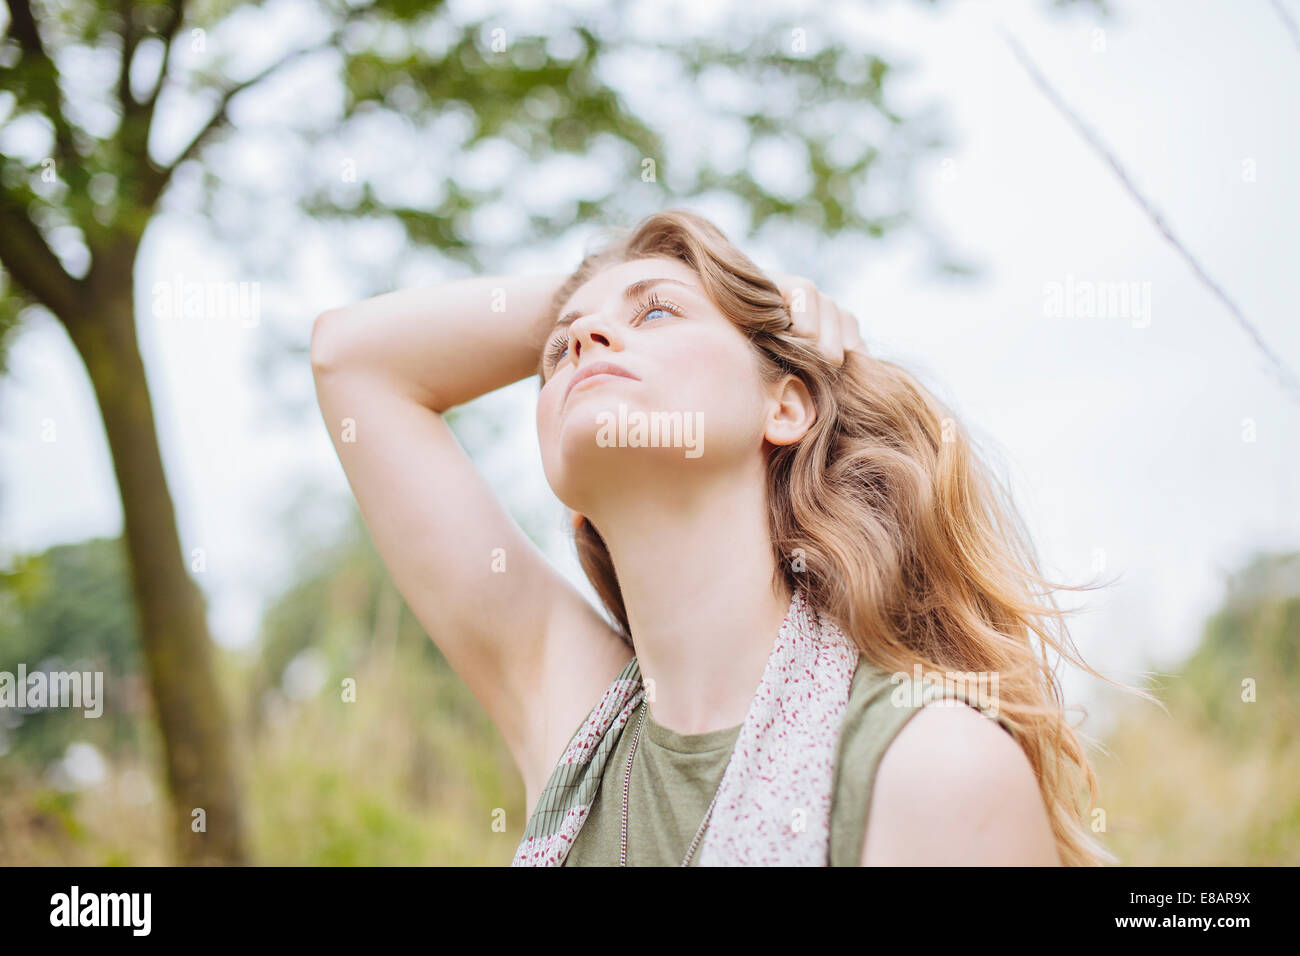 Serene young woman gazing up with hand in hair - Stock Image